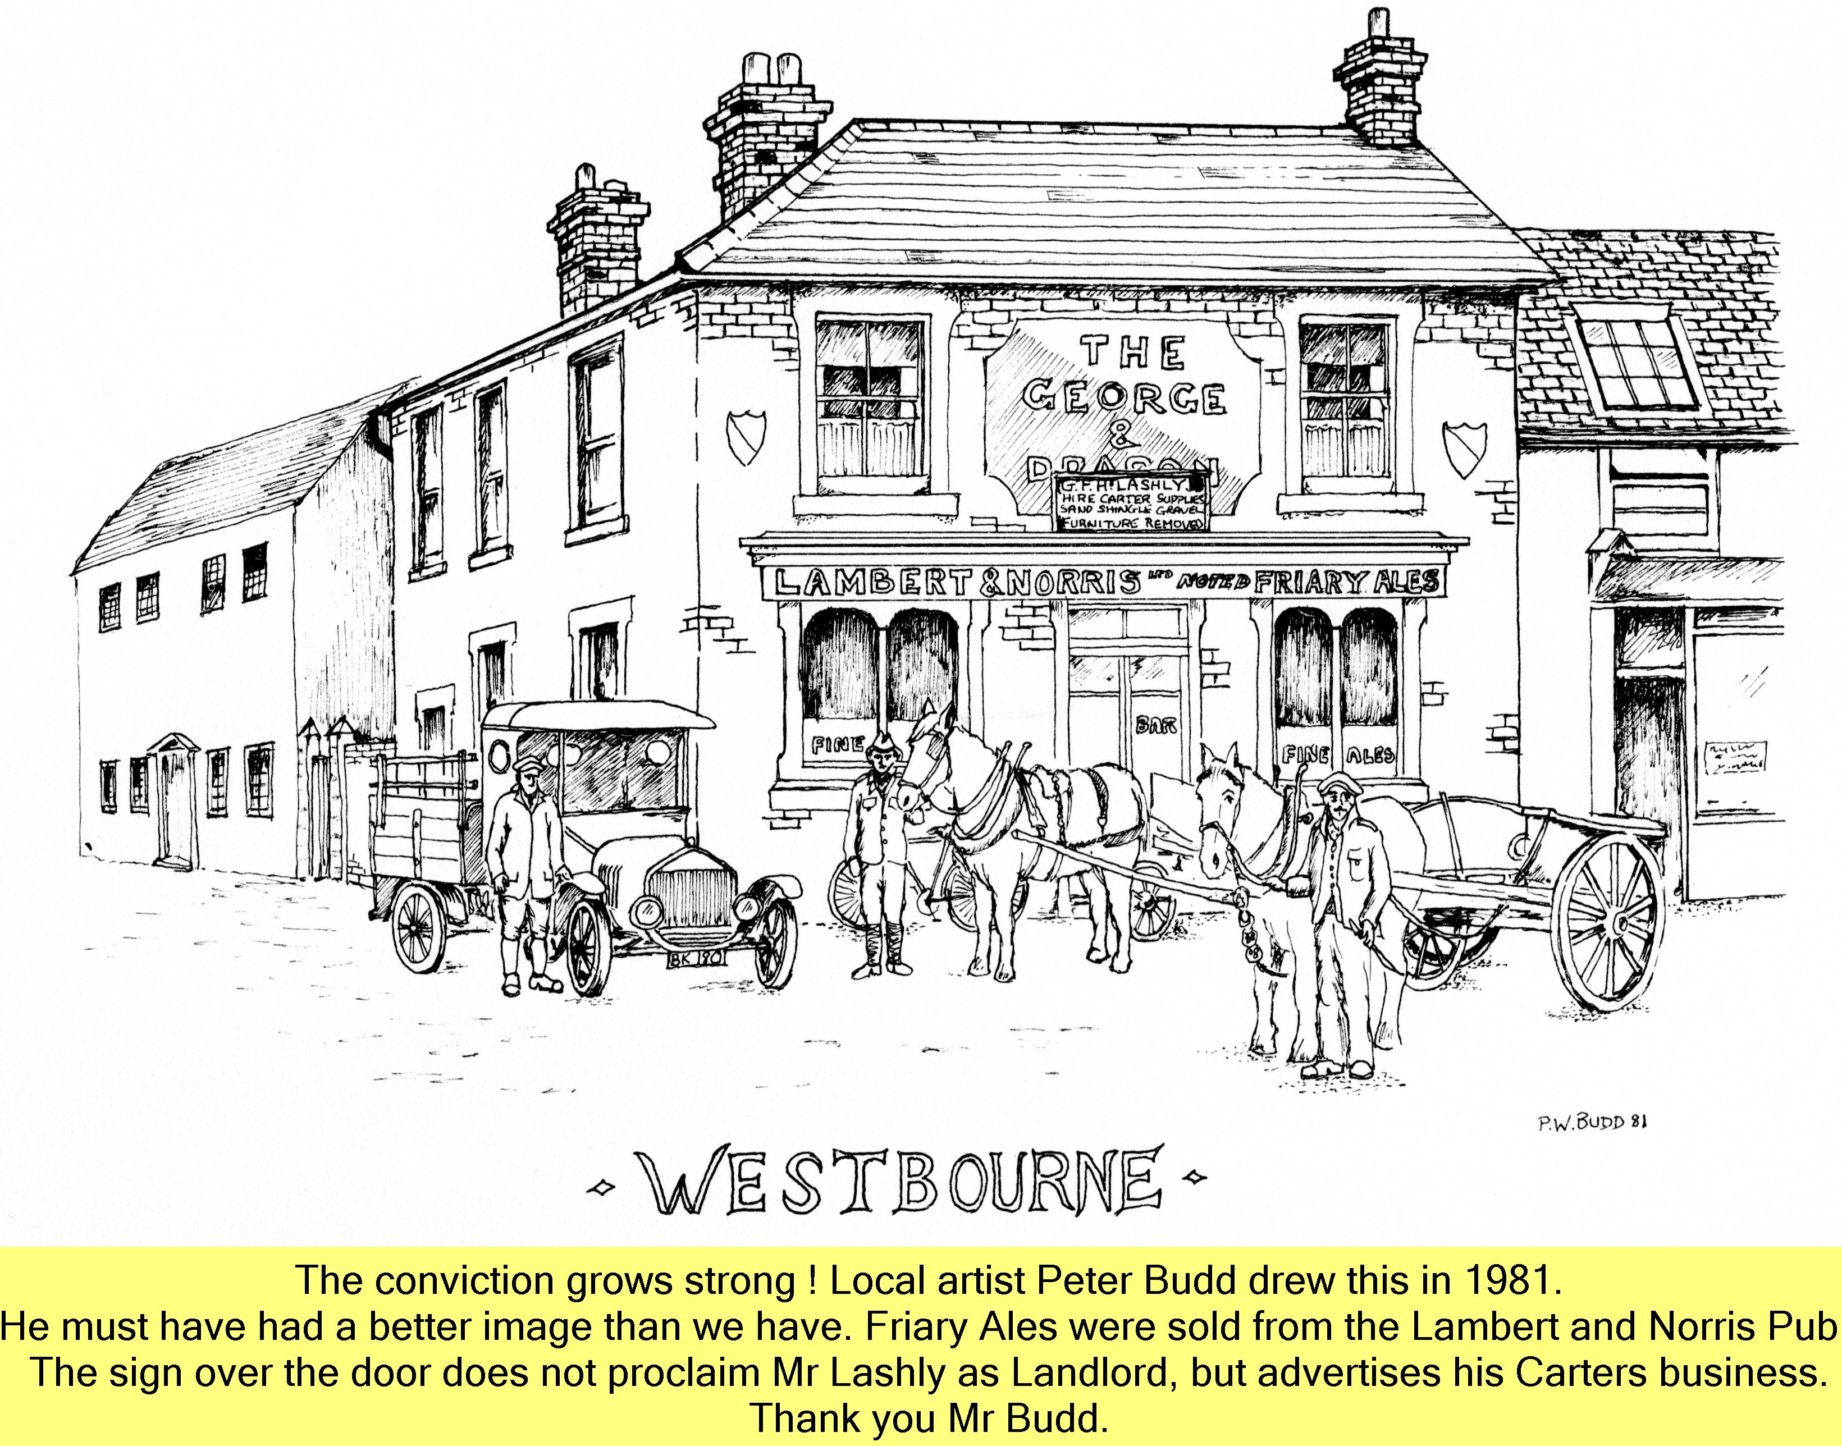 WESTBOURNE HISTORY PHOTO, GEORGE AND DRAGON, FRIARY ALE, LAMBERT AND NORRIS, LASHLY